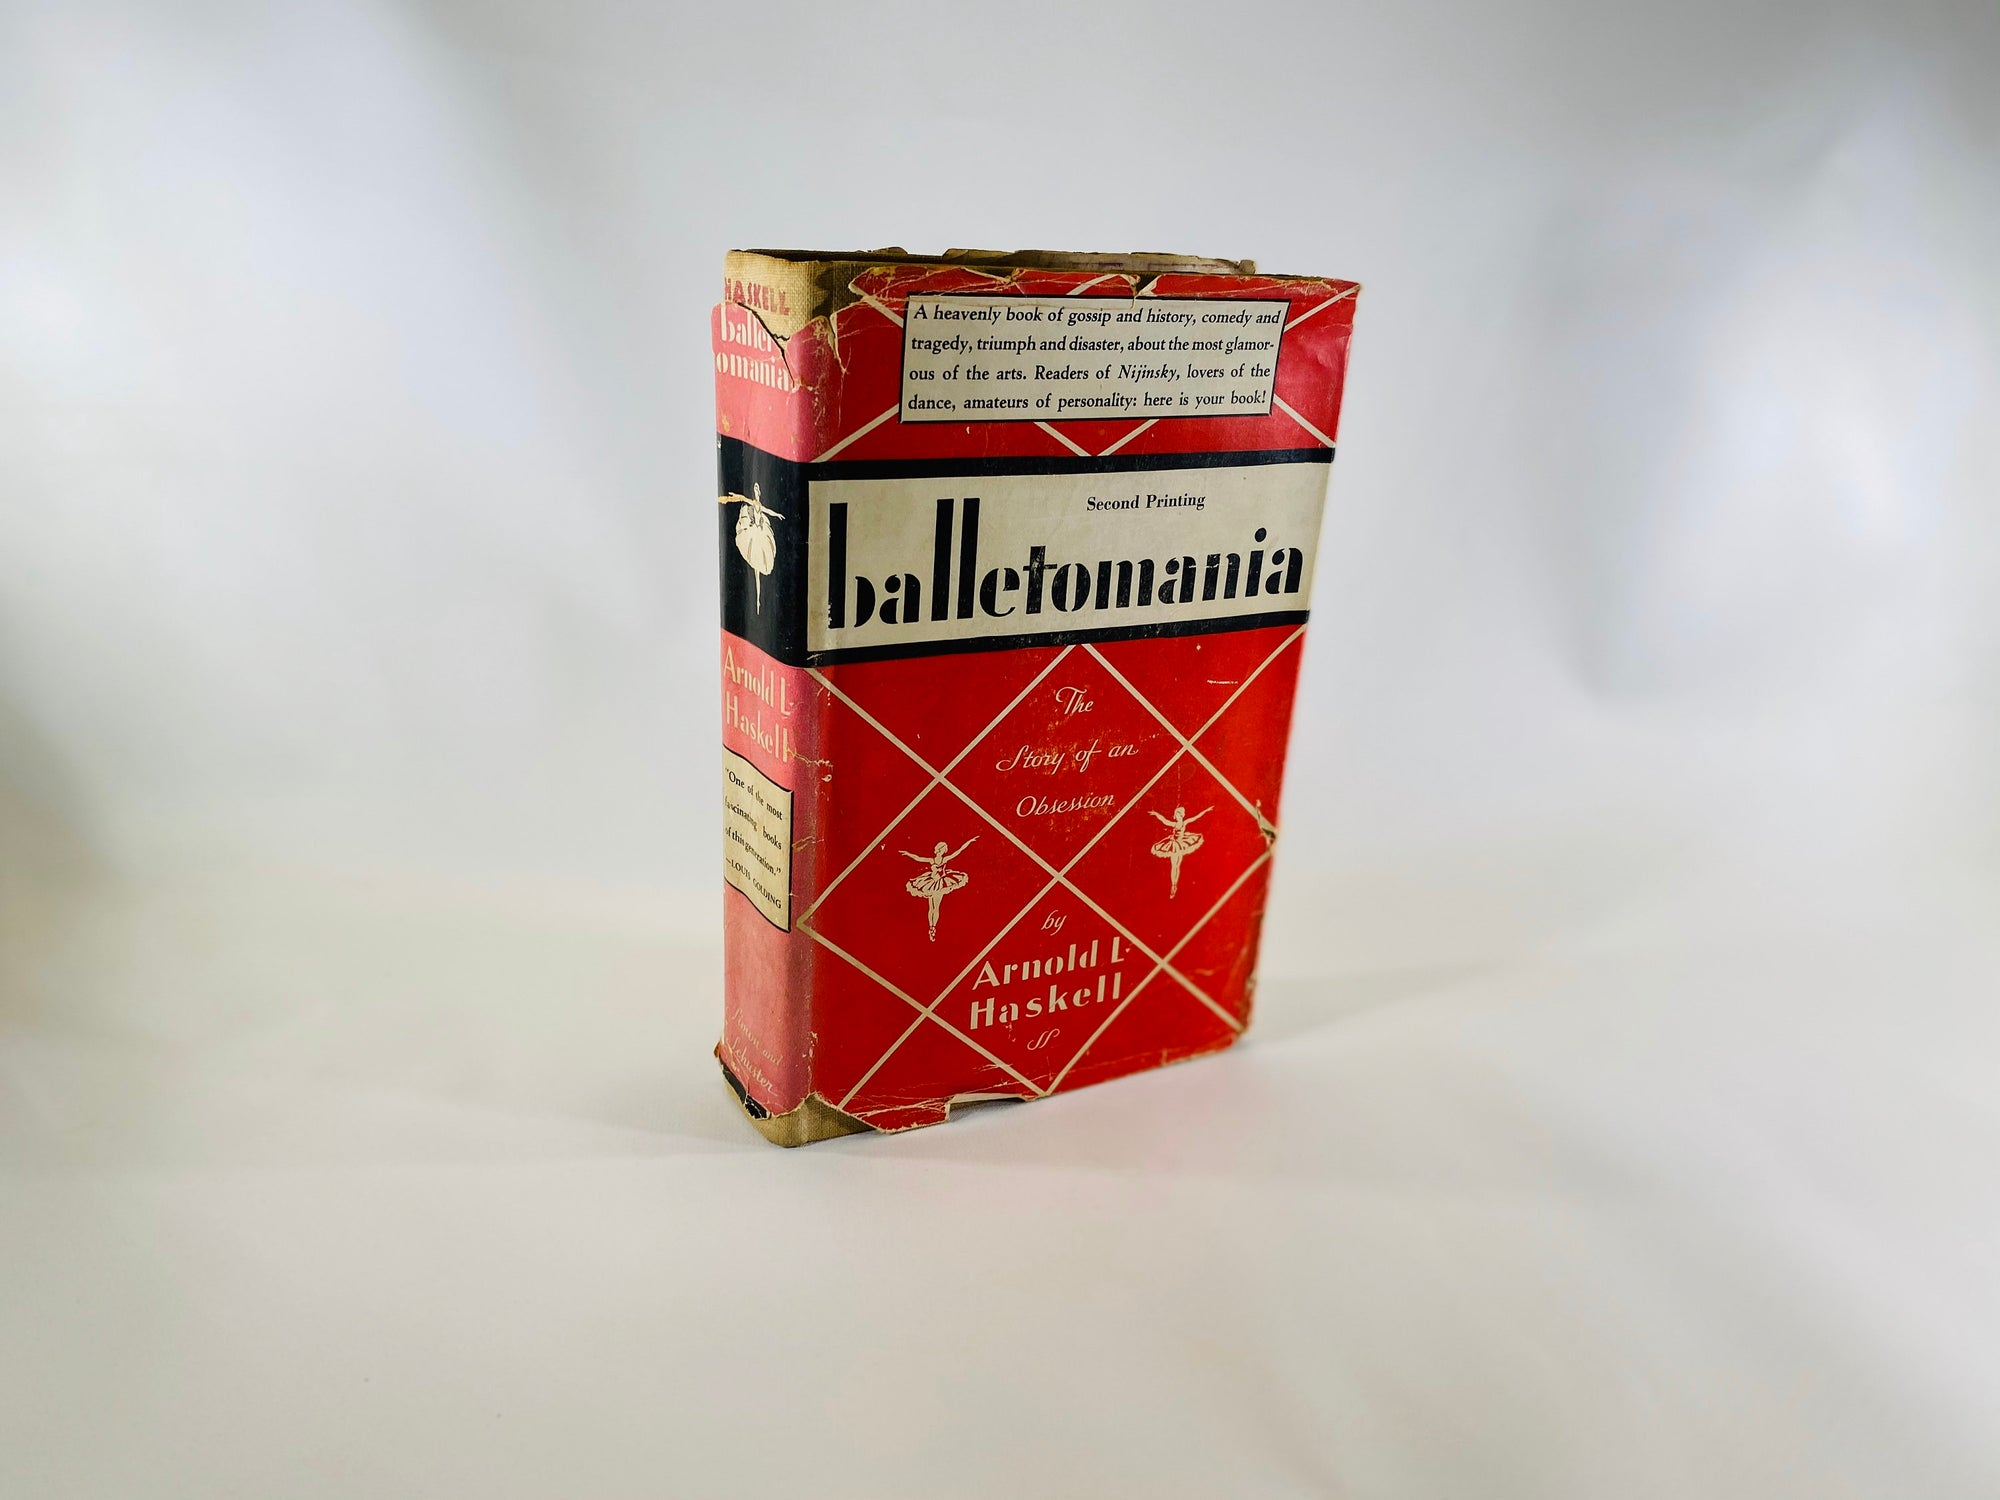 Balletomania the Story of Obsession by Arnold Haskell 1934